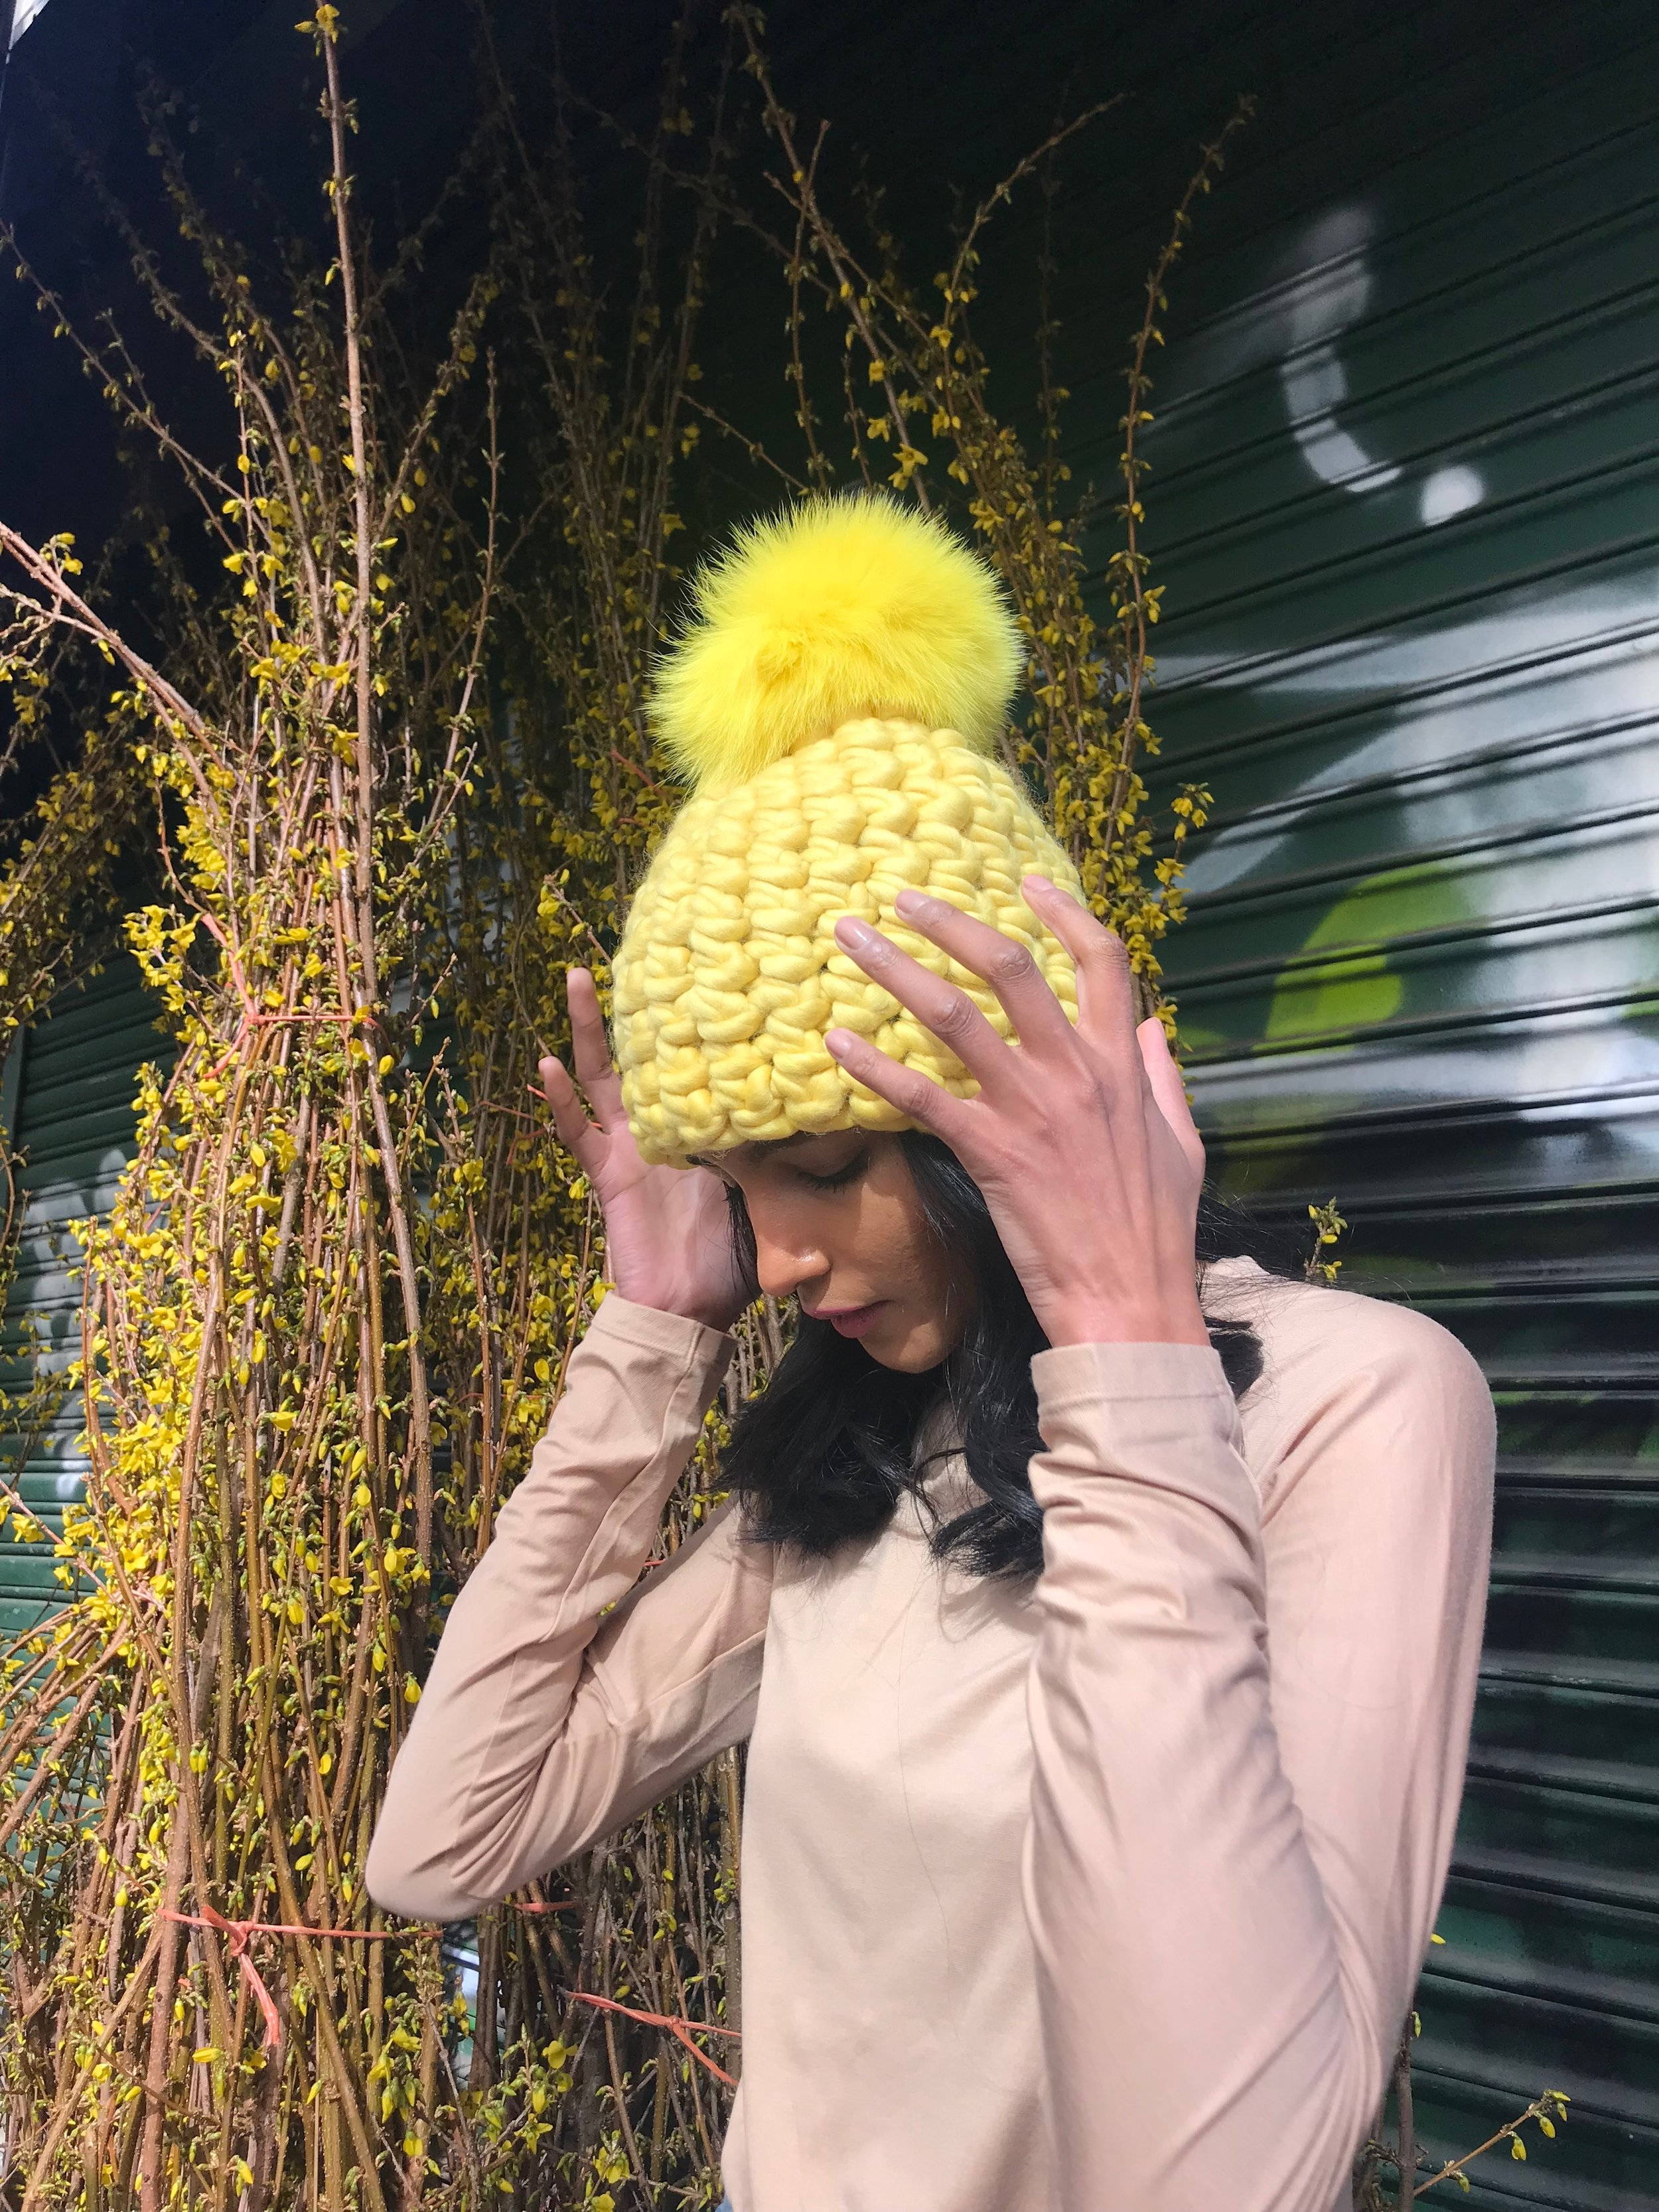 shaanti is wearing  the yellow beanie pomster with yellow pom